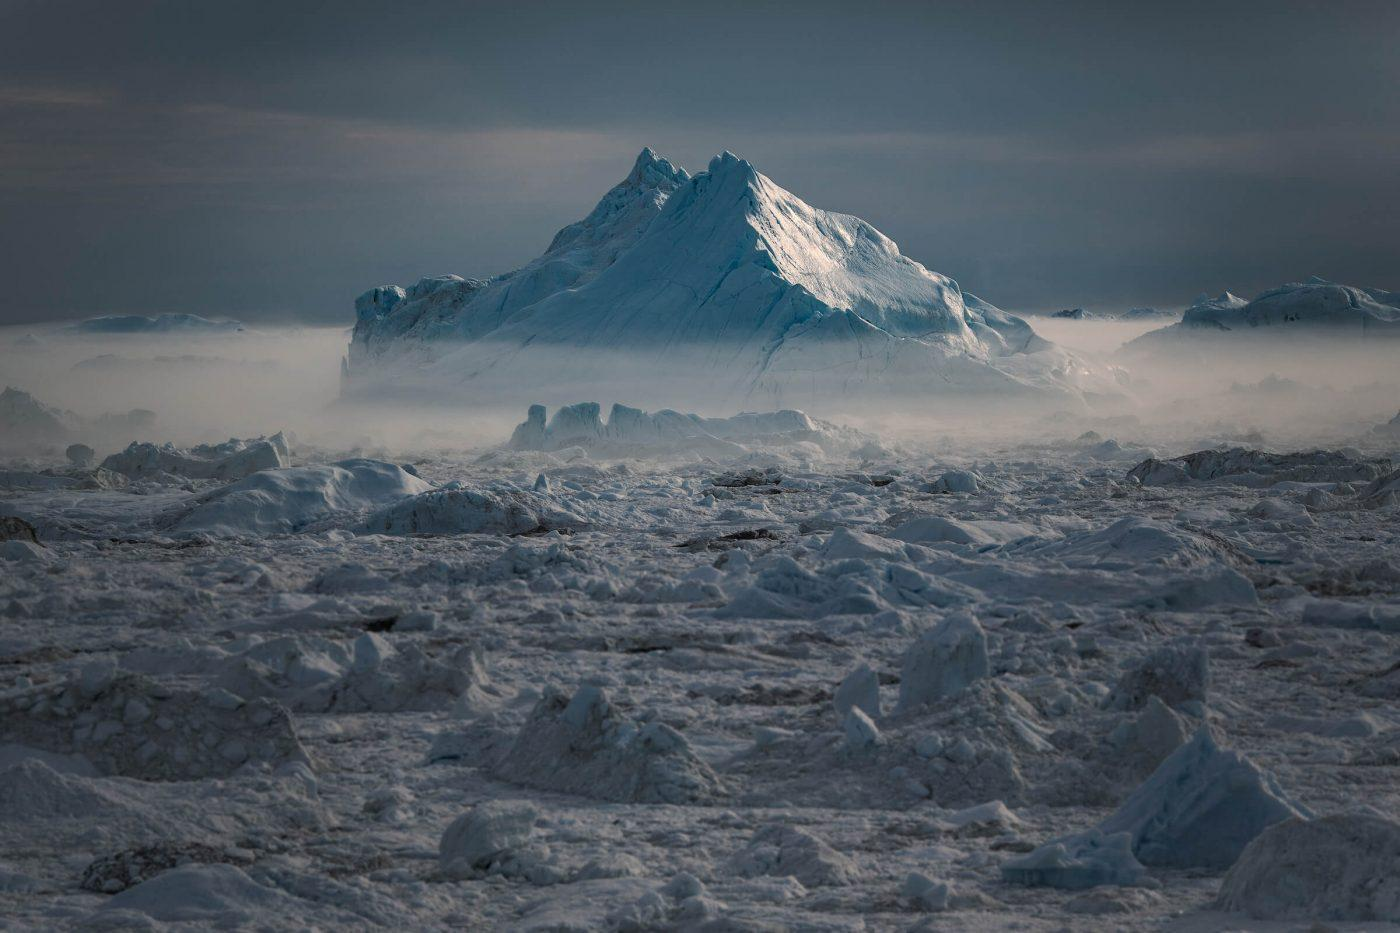 An iceberg in mist at sunset in the Ilulissat ice fjord in Greenland. Photo by Mads Pihl.jpg